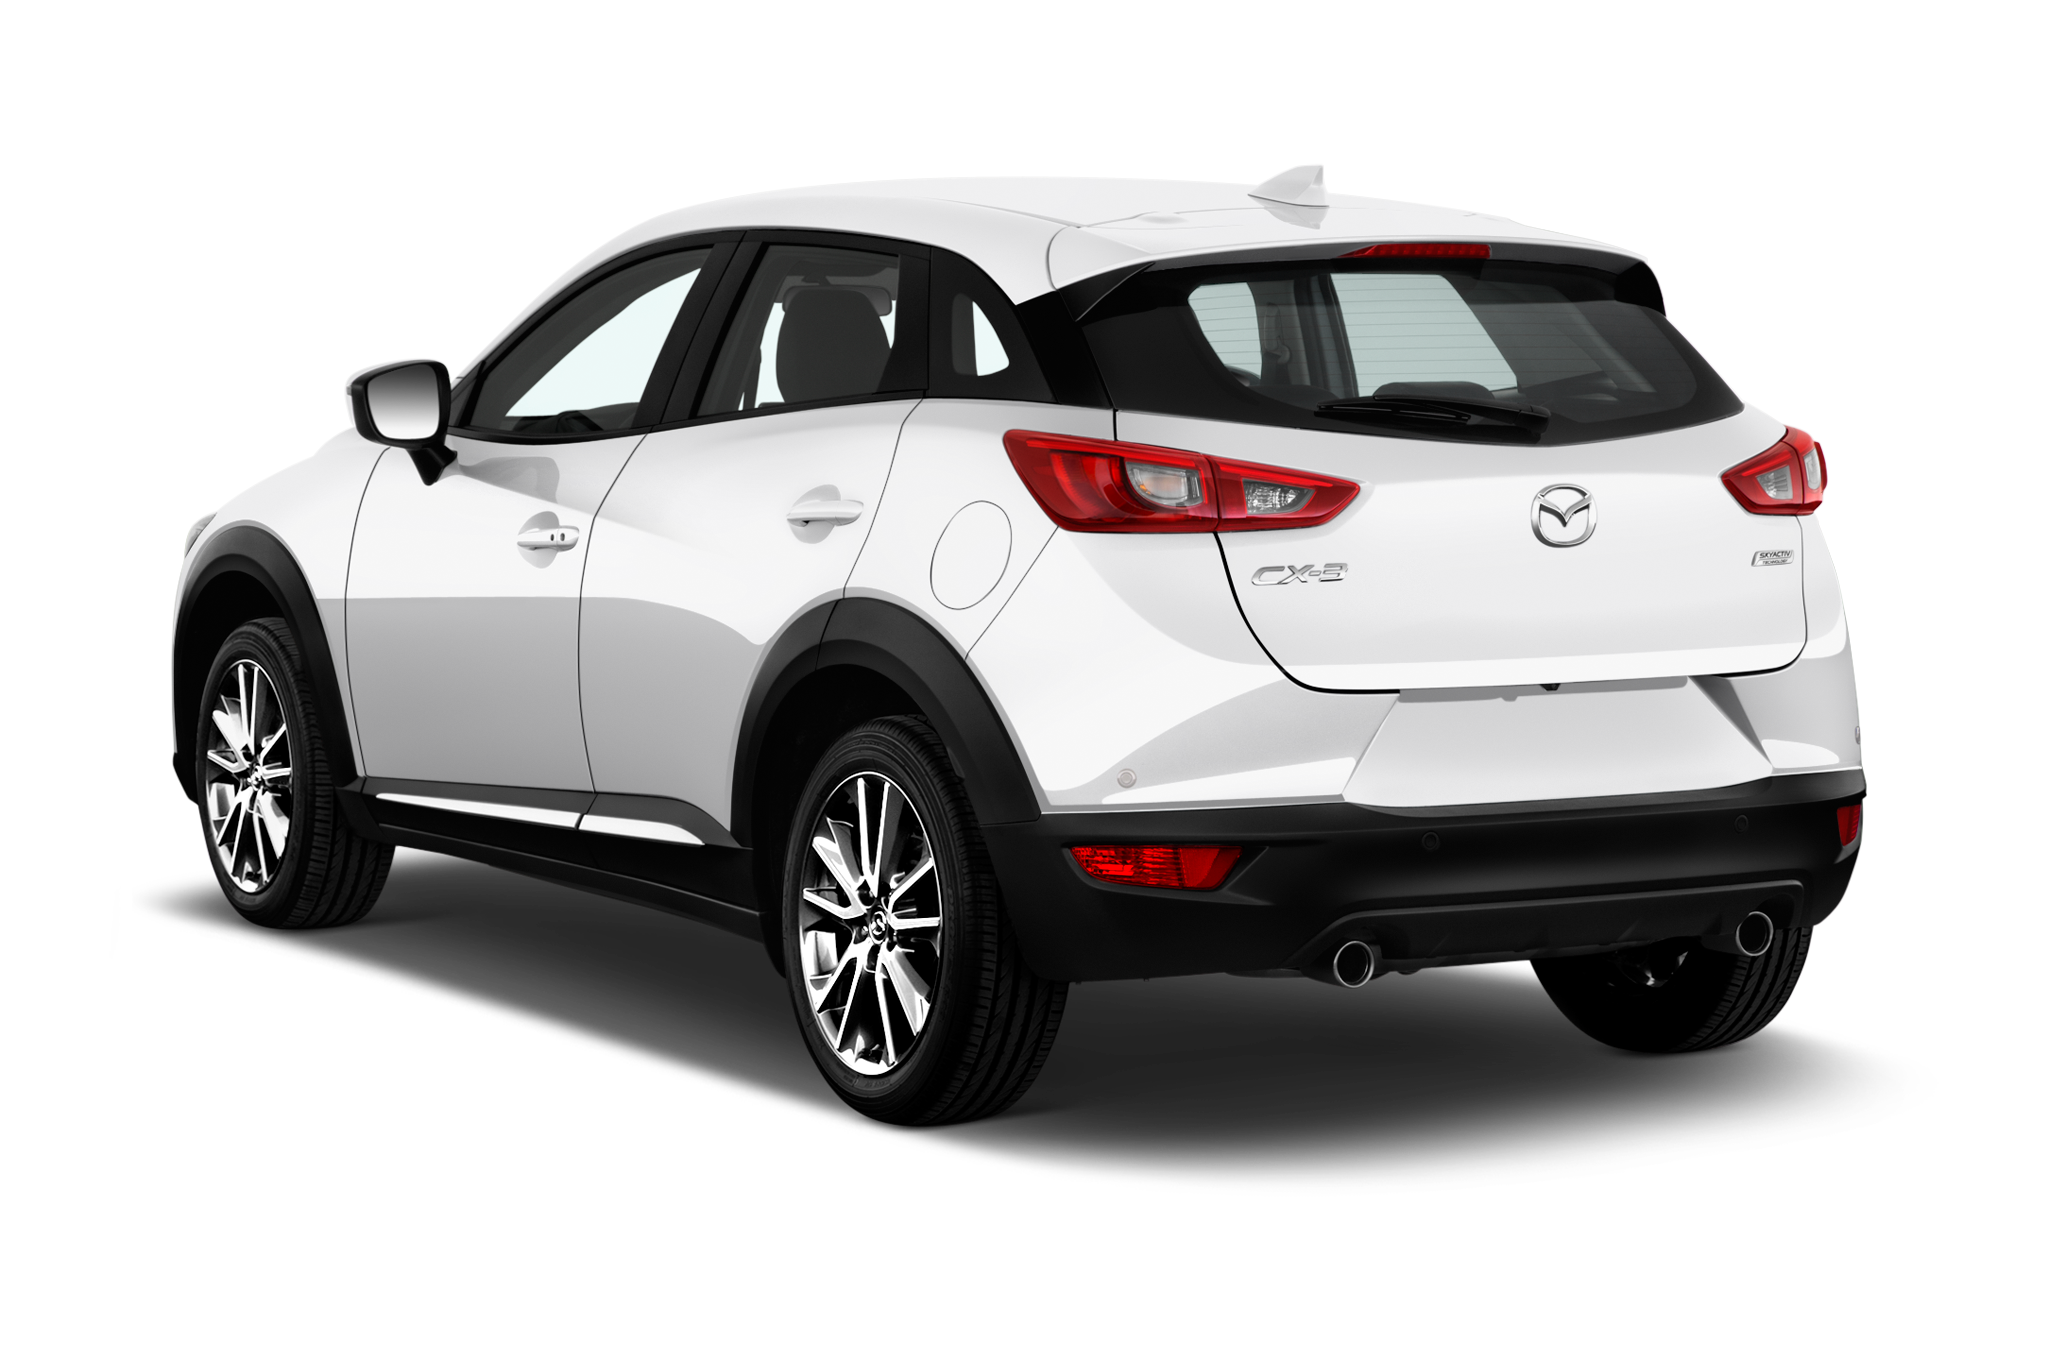 Mazda Mx3 2016 >> 2016 Mazda CX-3 Review